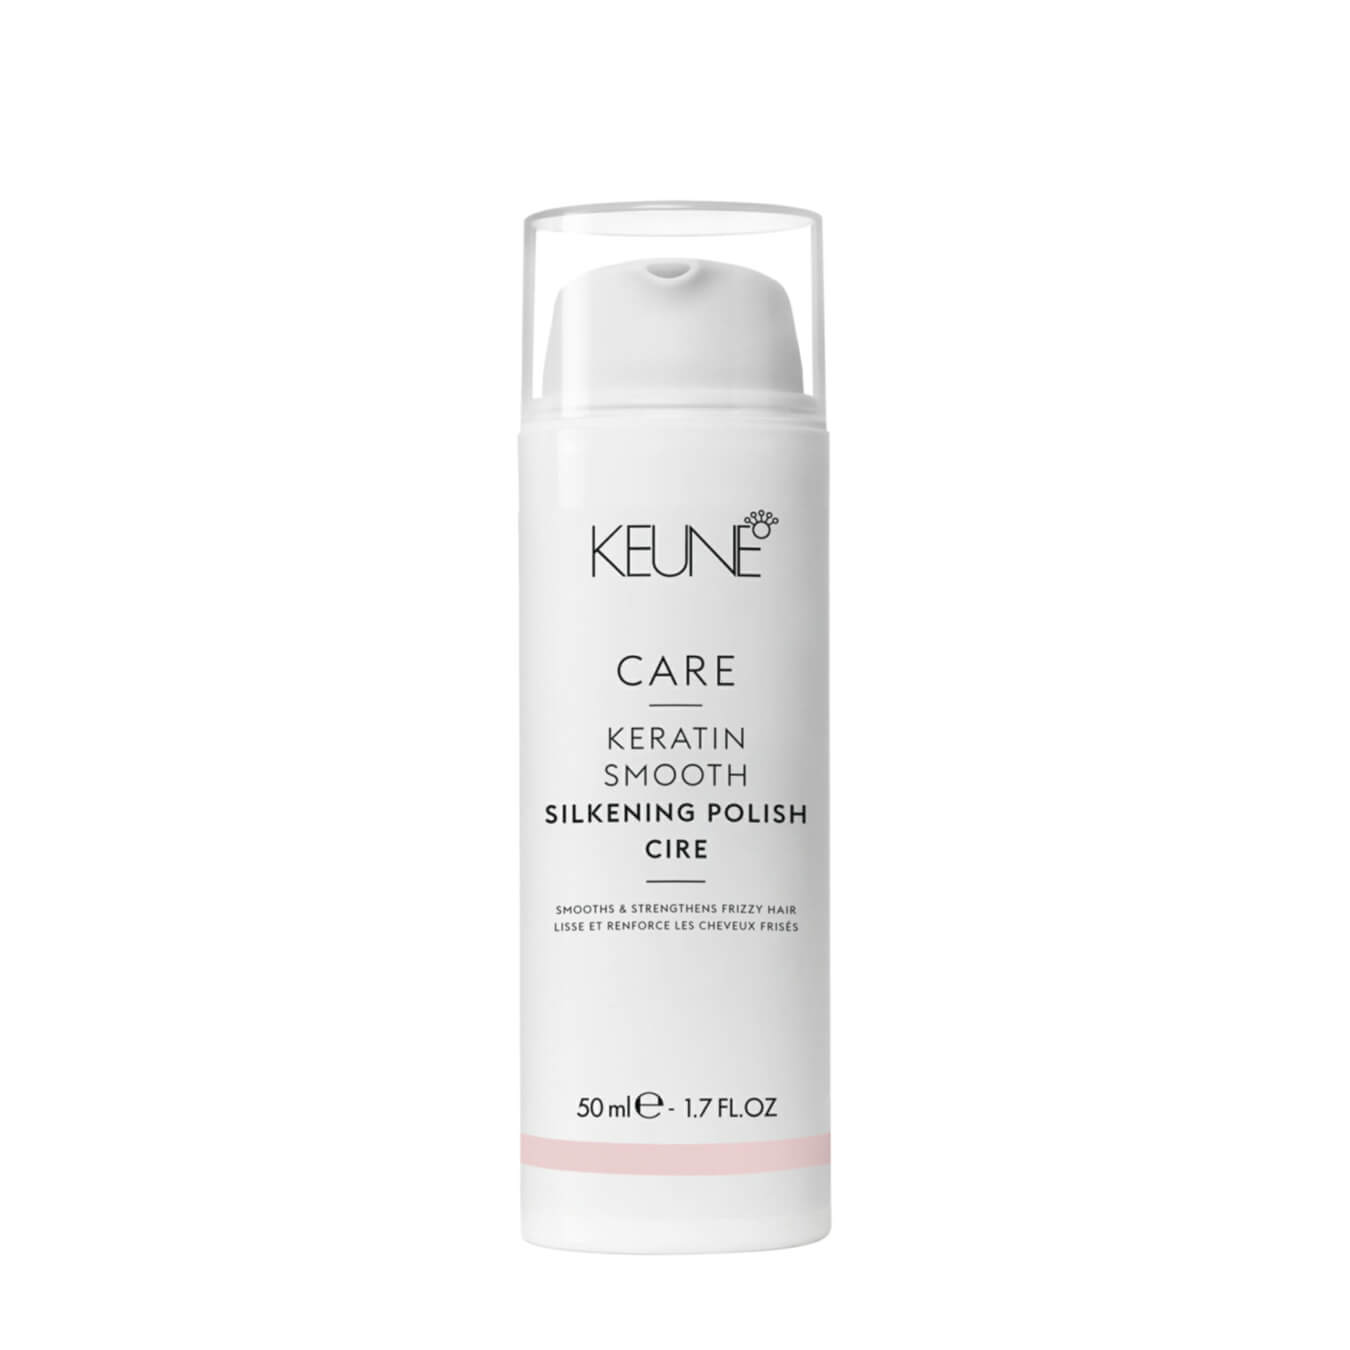 Koop Keune Care Keratin Smooth Silkening Polish 50ml